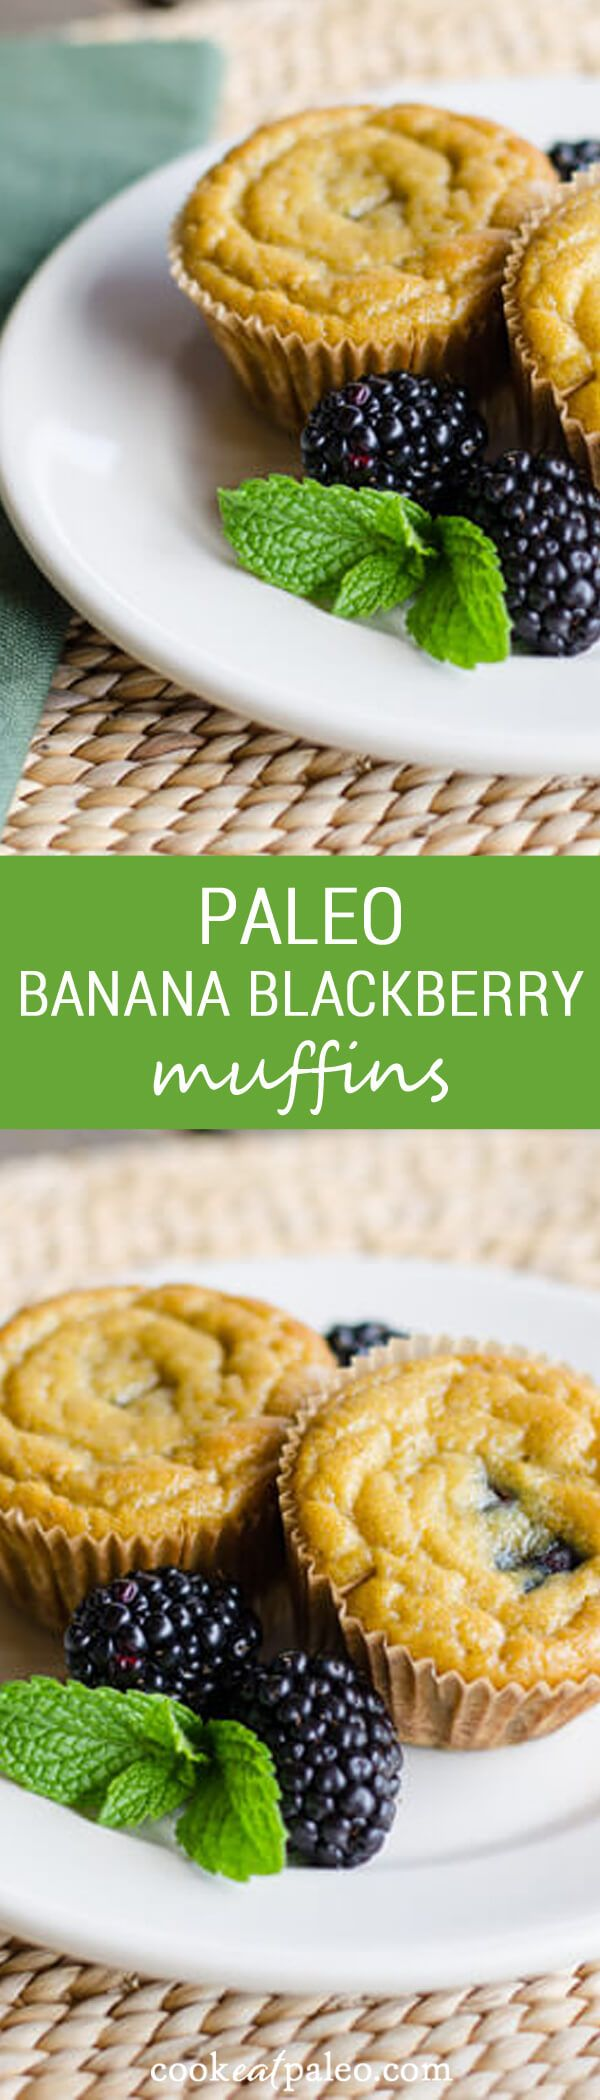 This paleo banana blackberry muffins recipe is gluten-free, grain-free and dairy-free. The blackberry and banana flavor combination really delivers. ~ http://cookeatpaleo.com